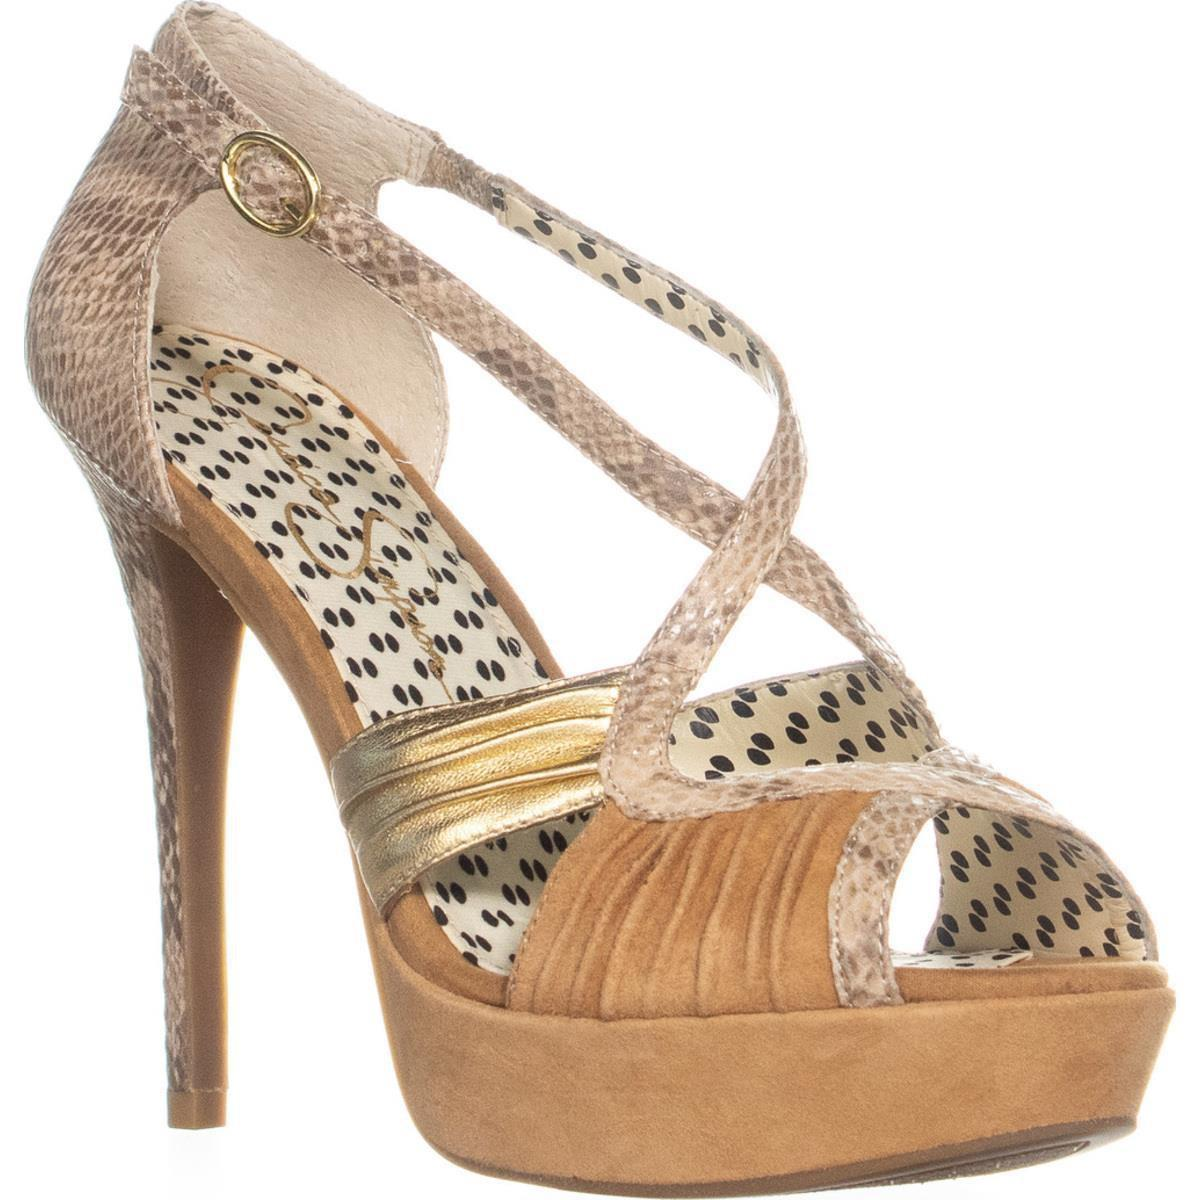 629cffb80aa Lyst - Jessica Simpson Brouge Ankle Strap Platform Pumps in Natural